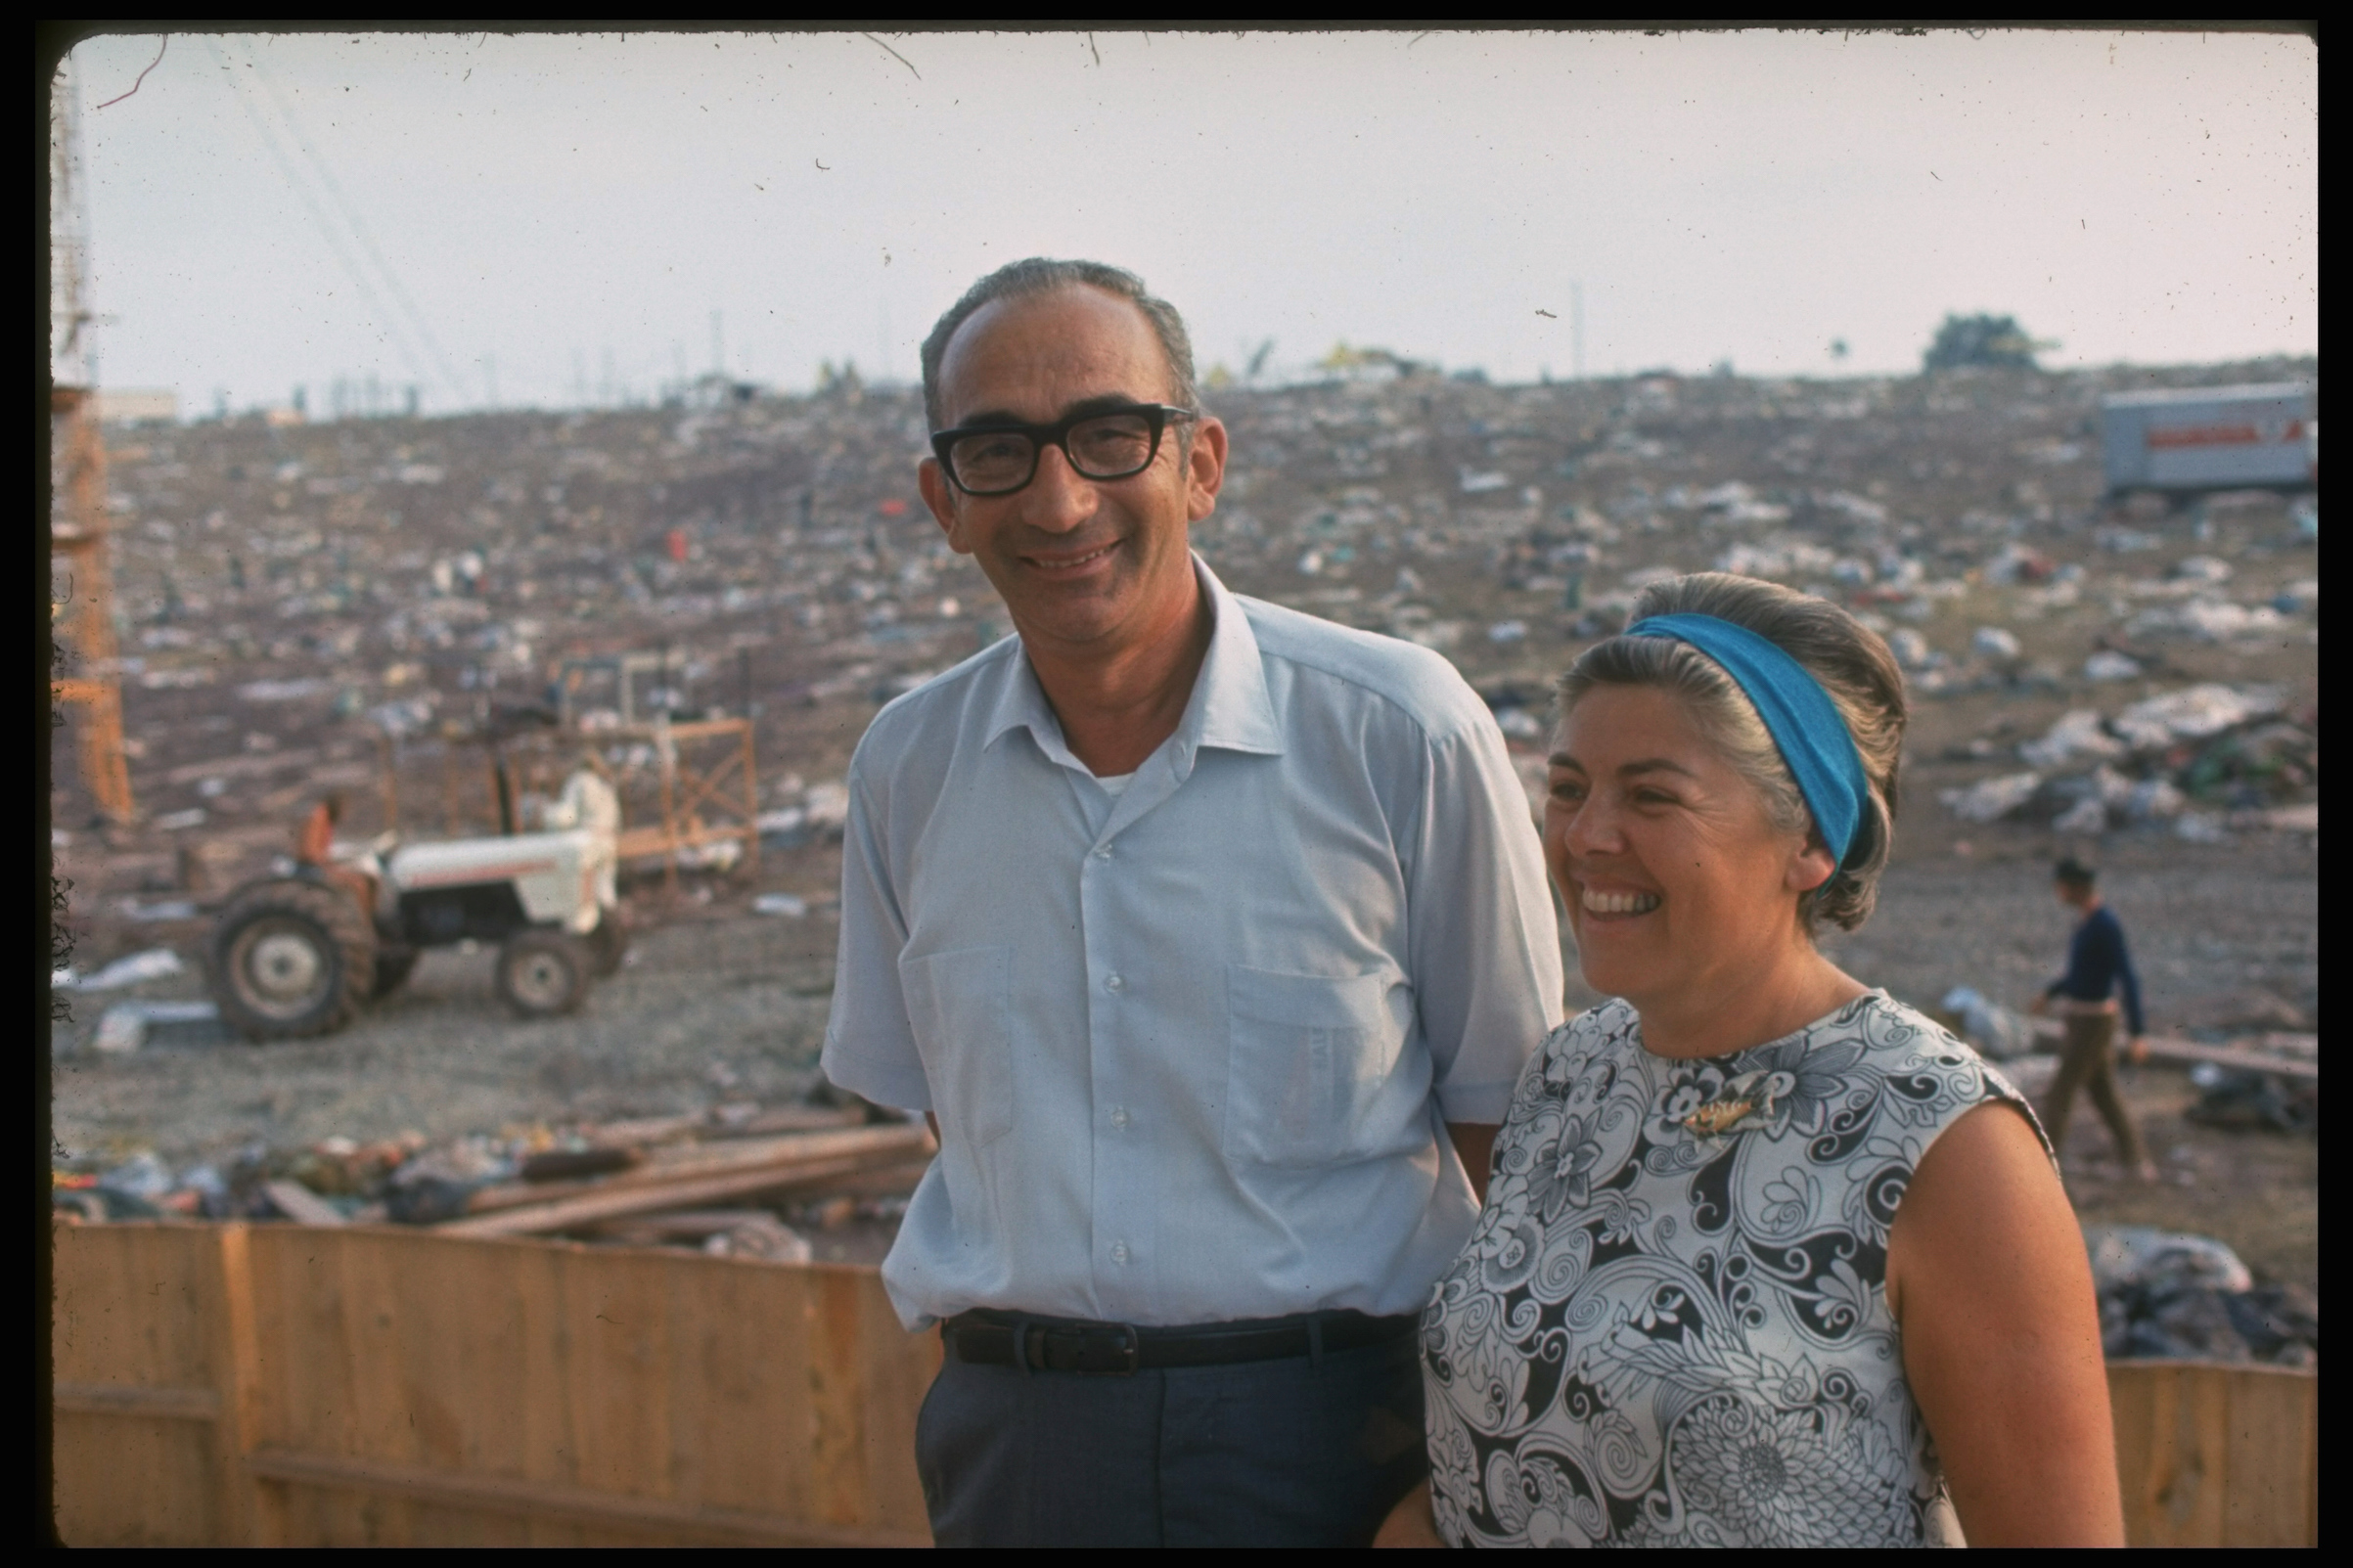 Max Yasgur Rented His Farm for Woodstock. His Neighbors Sued | Time